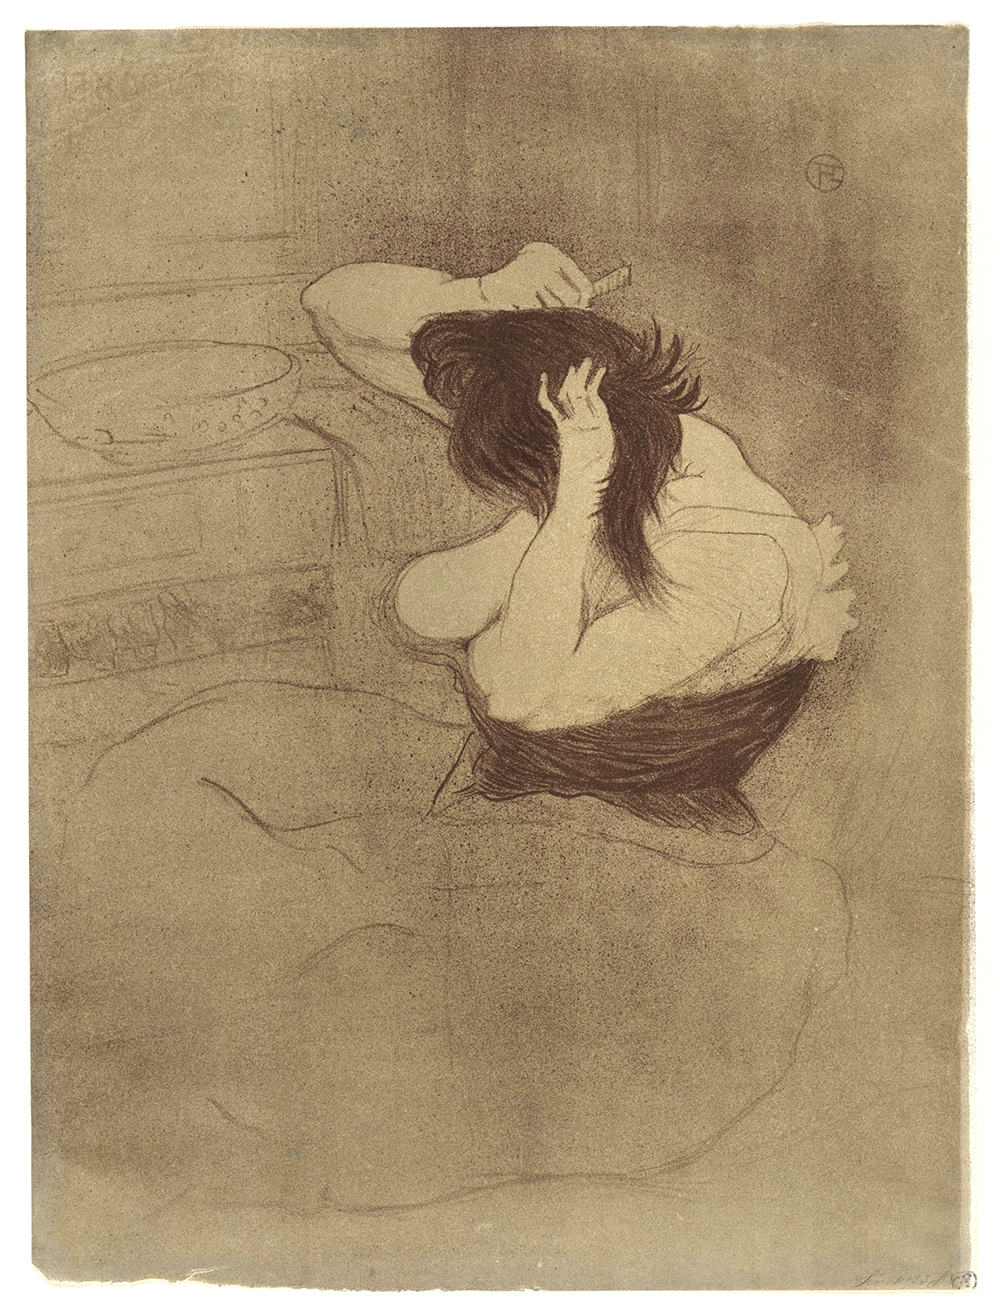 Toulouse_Lautrec_Woman_Combing_Hair